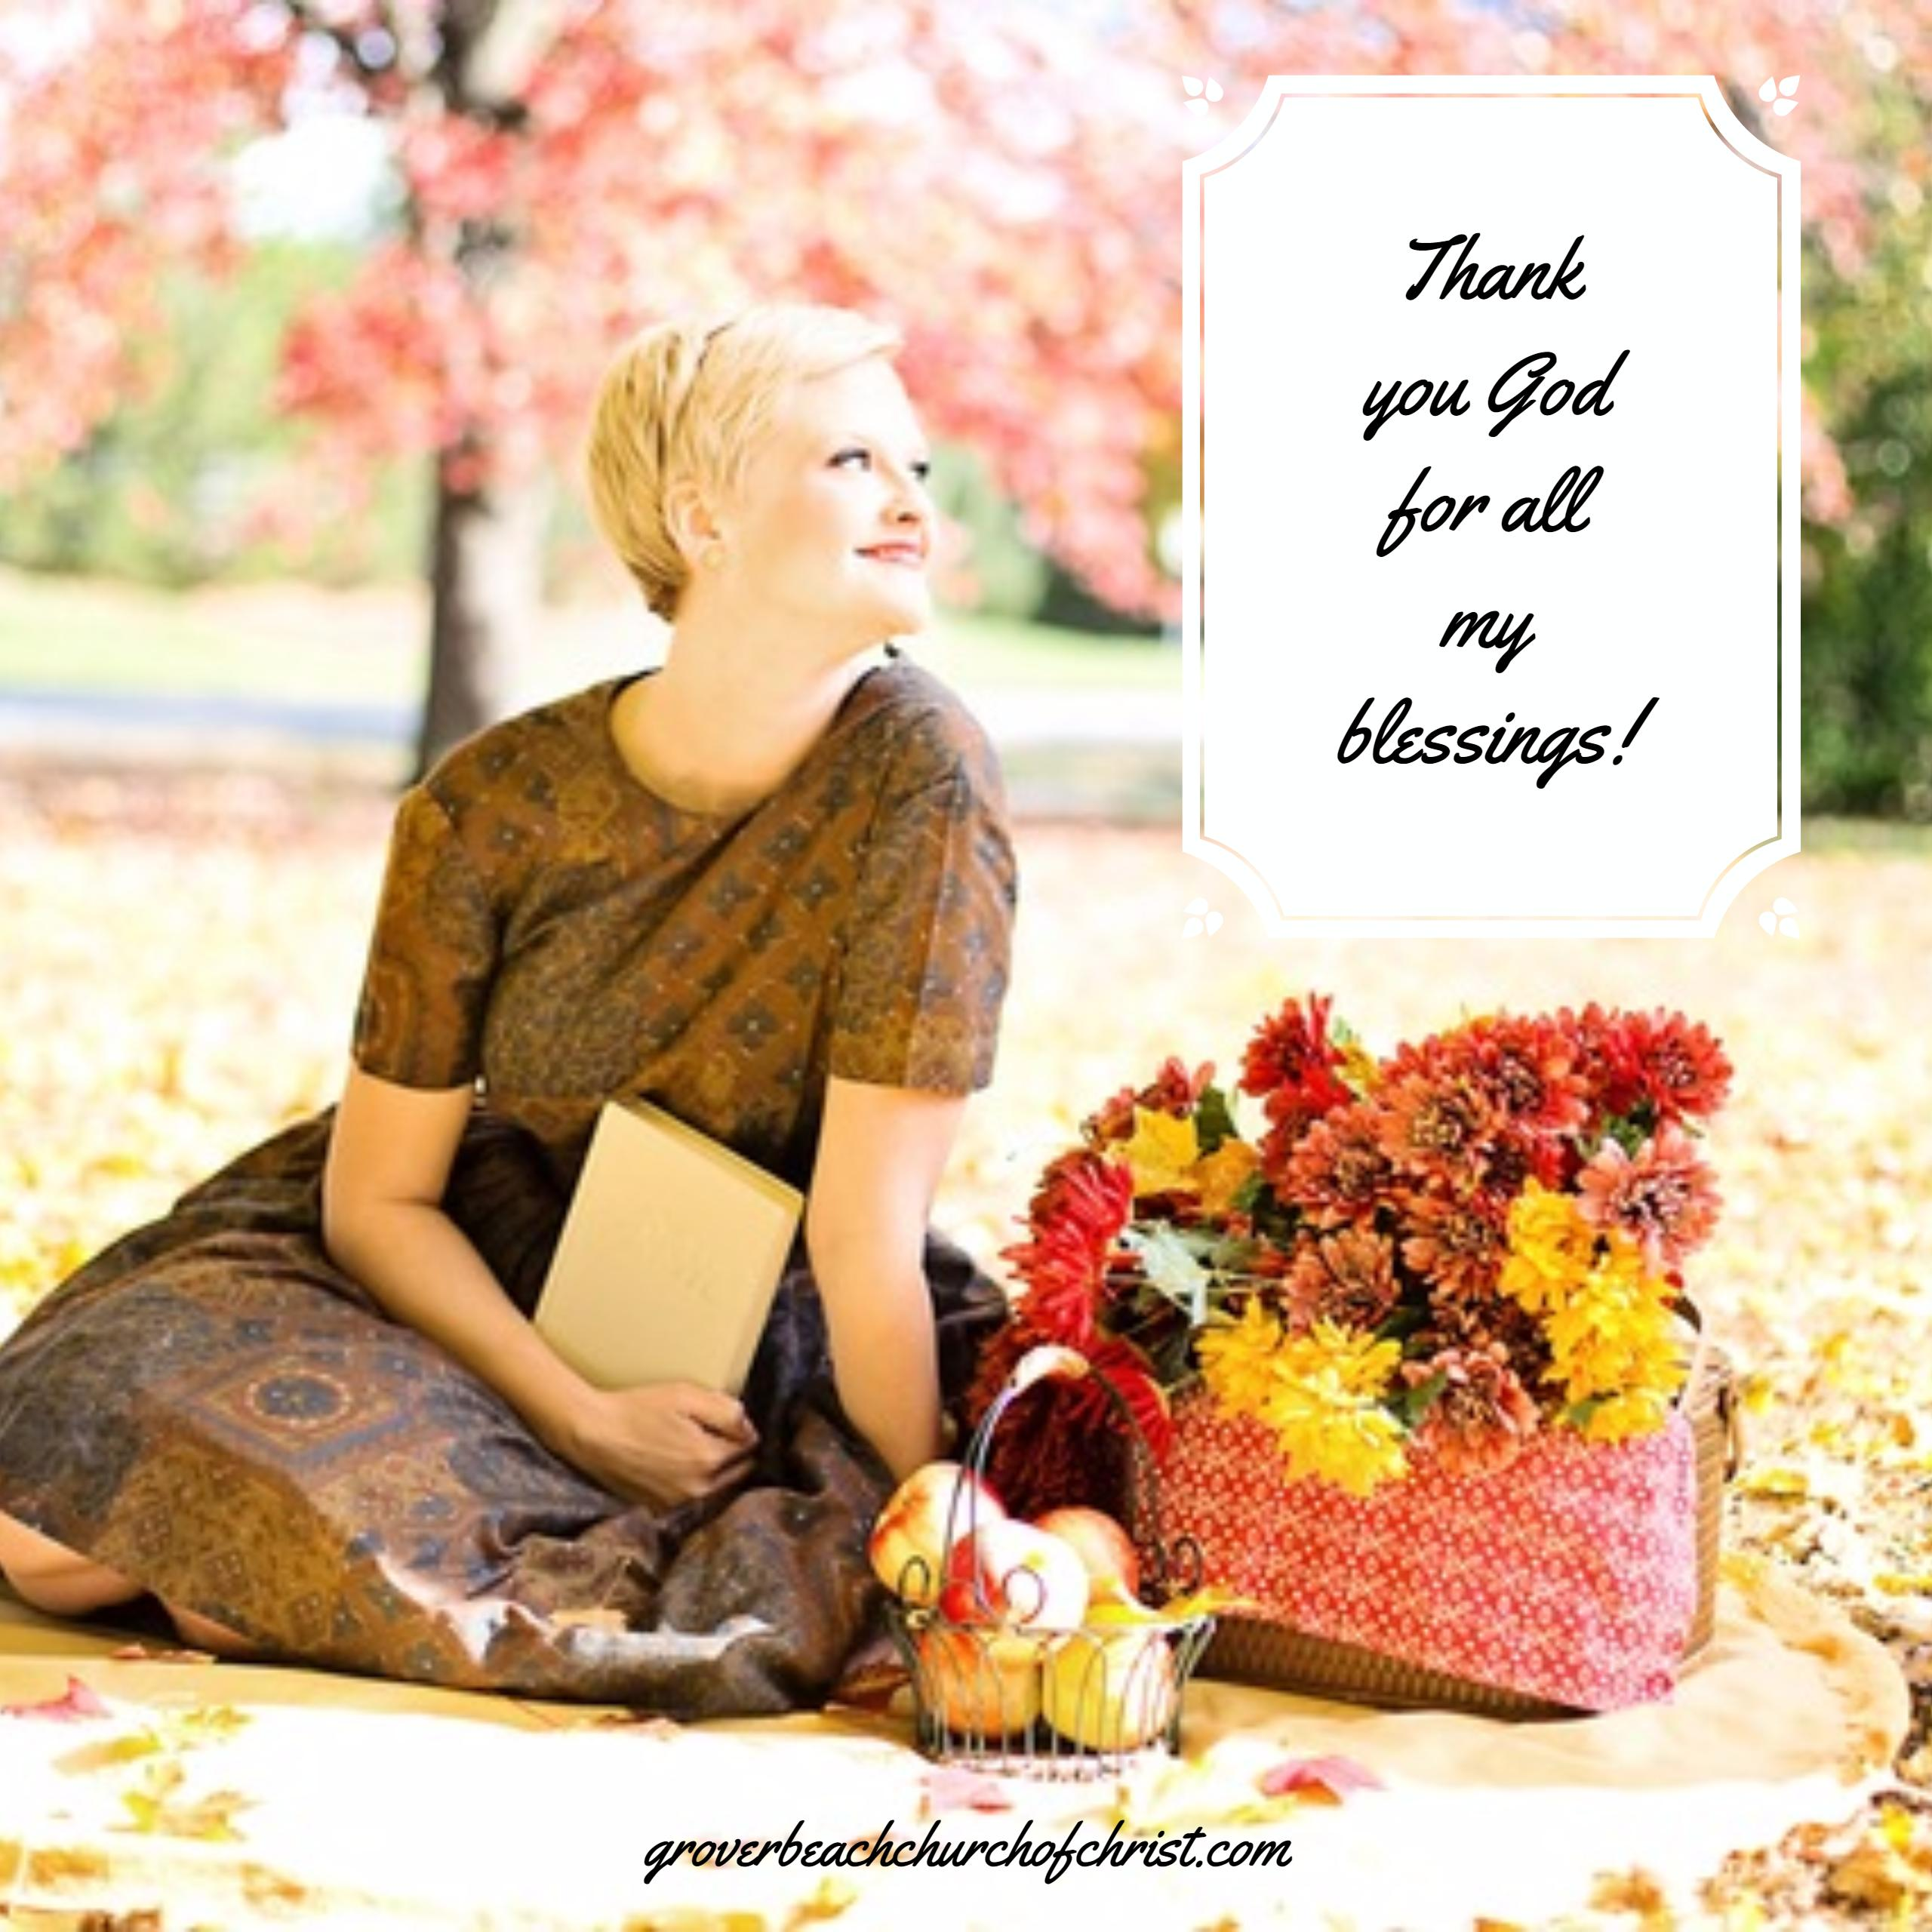 thank-you-god-for-all-my-blessings